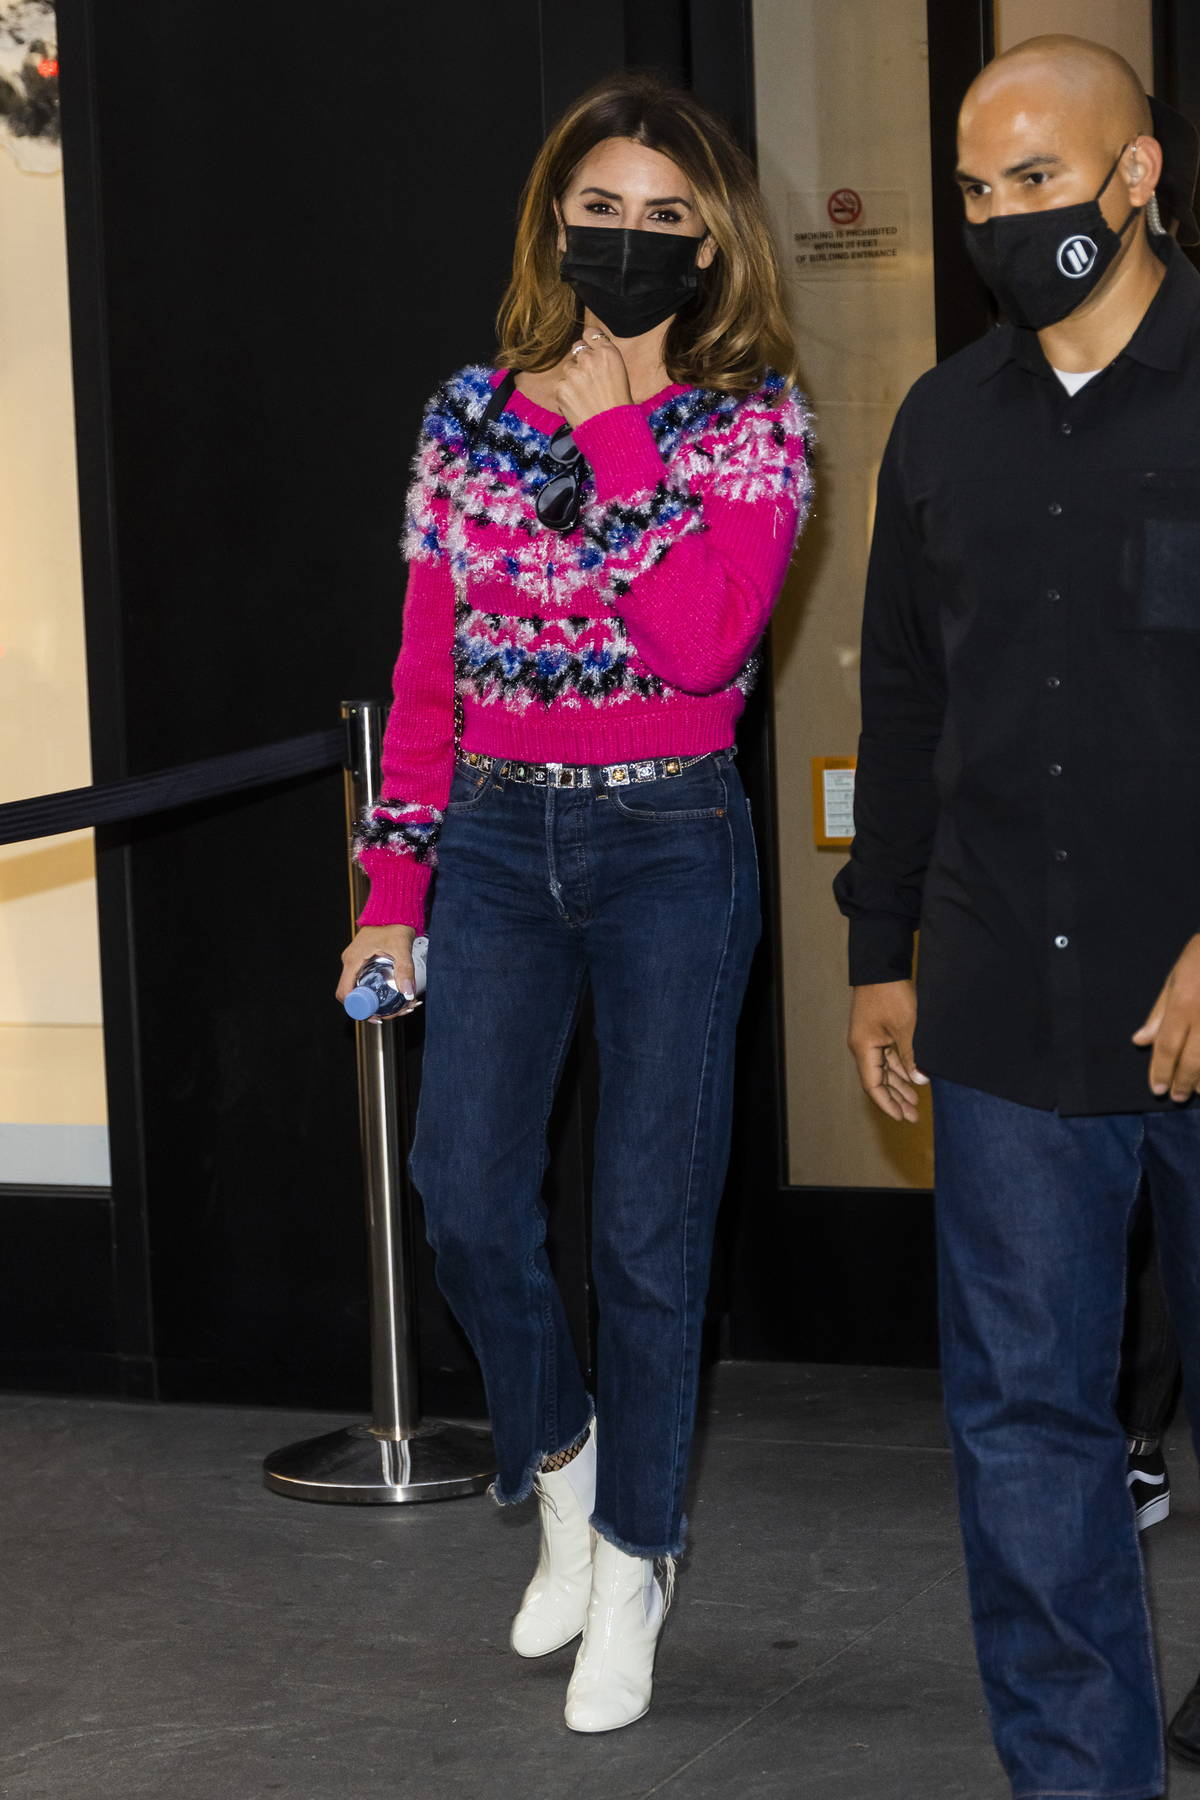 Penelope Cruz steps out looking fashionable in a pink sweater and jeans in New York City